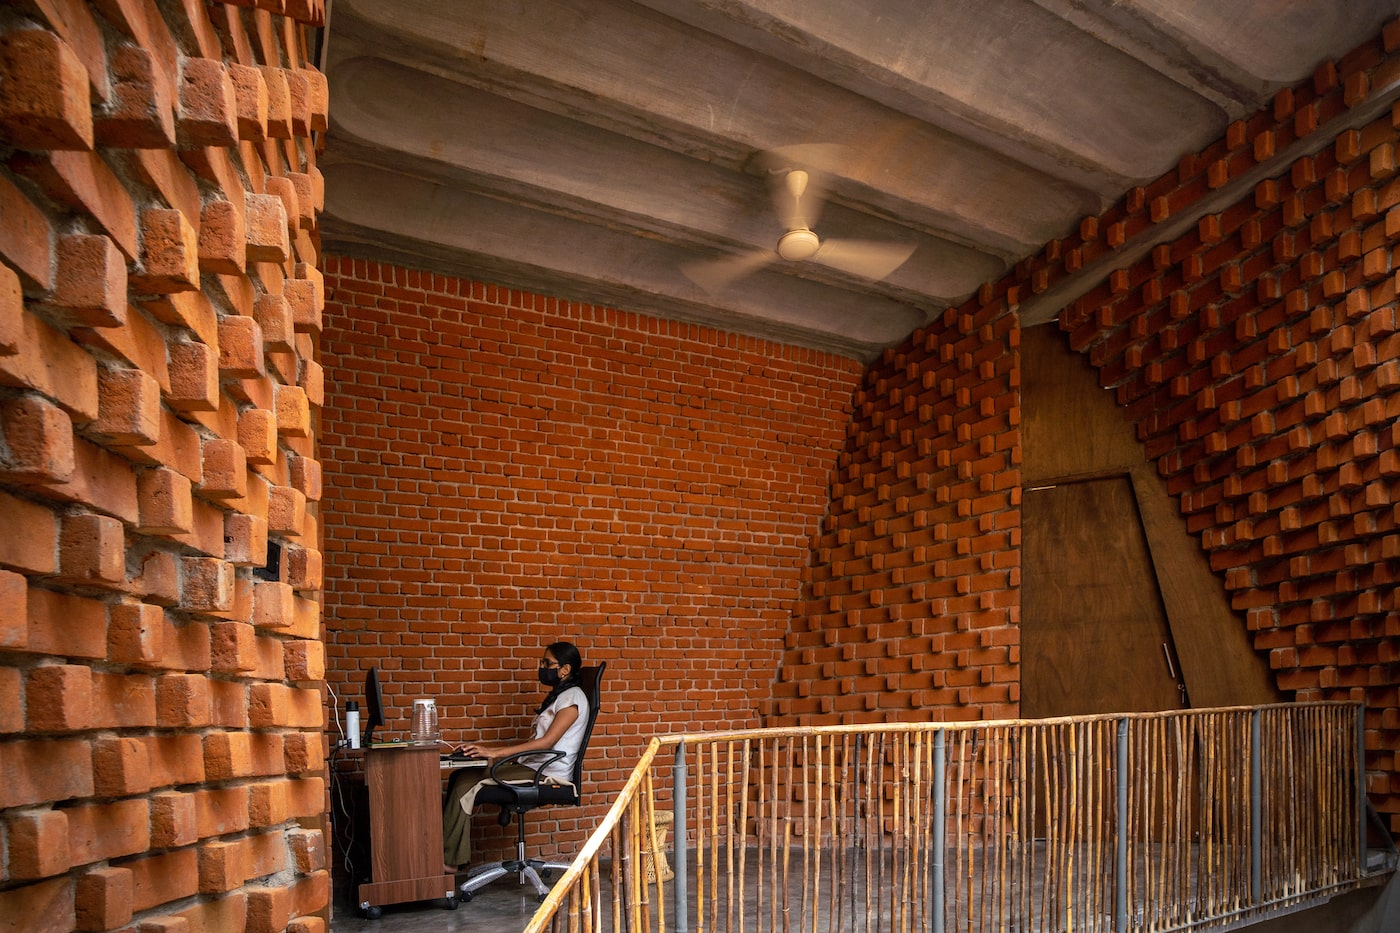 Woman sitting at desk on mezzanine level in Pirouette House made from bricks